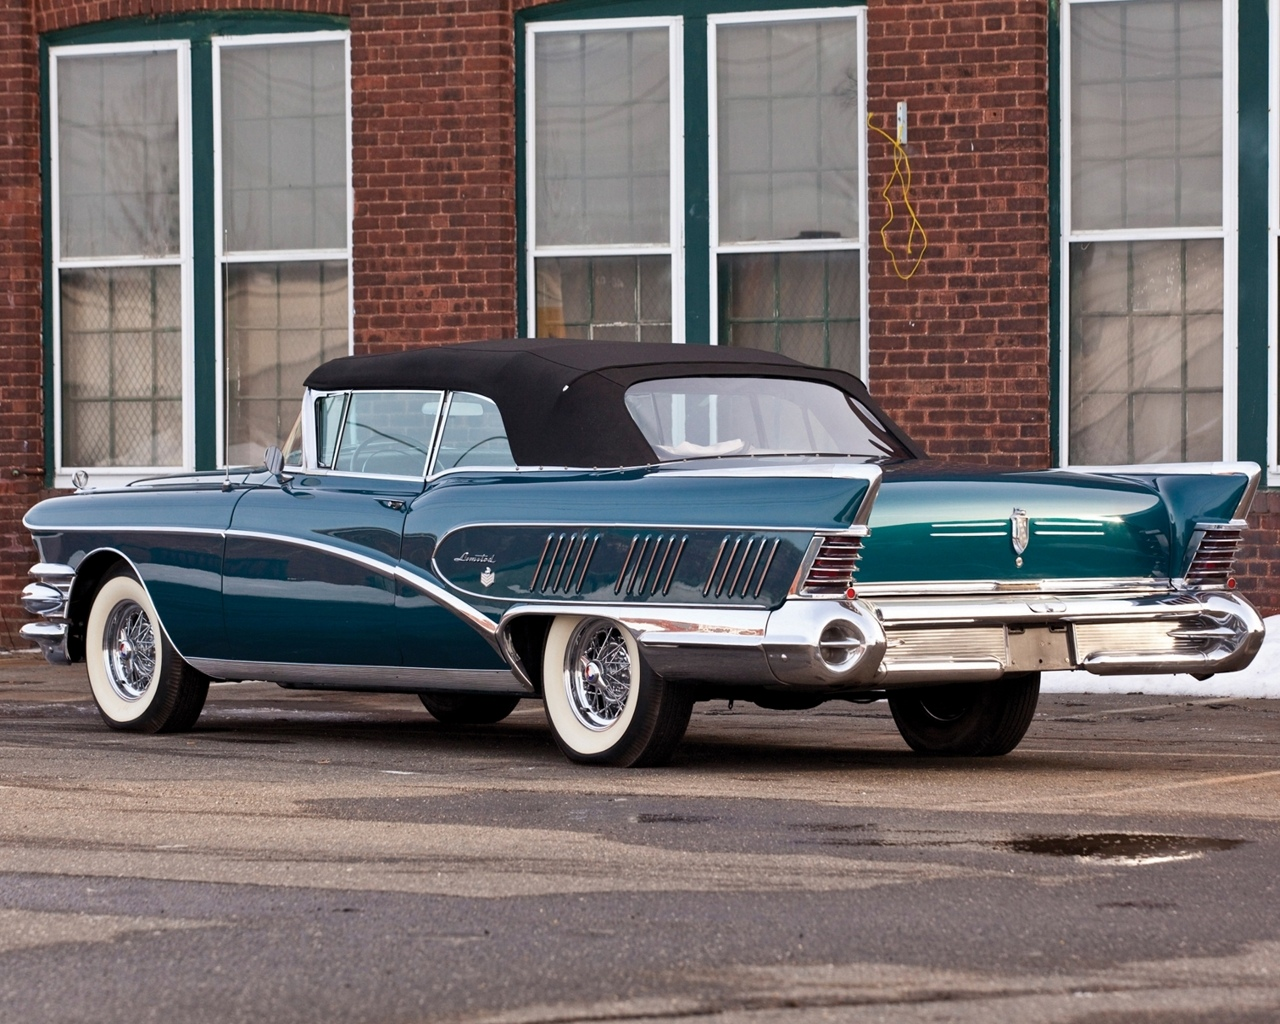 Hd wallpapers 2012 american classic cars wallpapers for American and classic cars